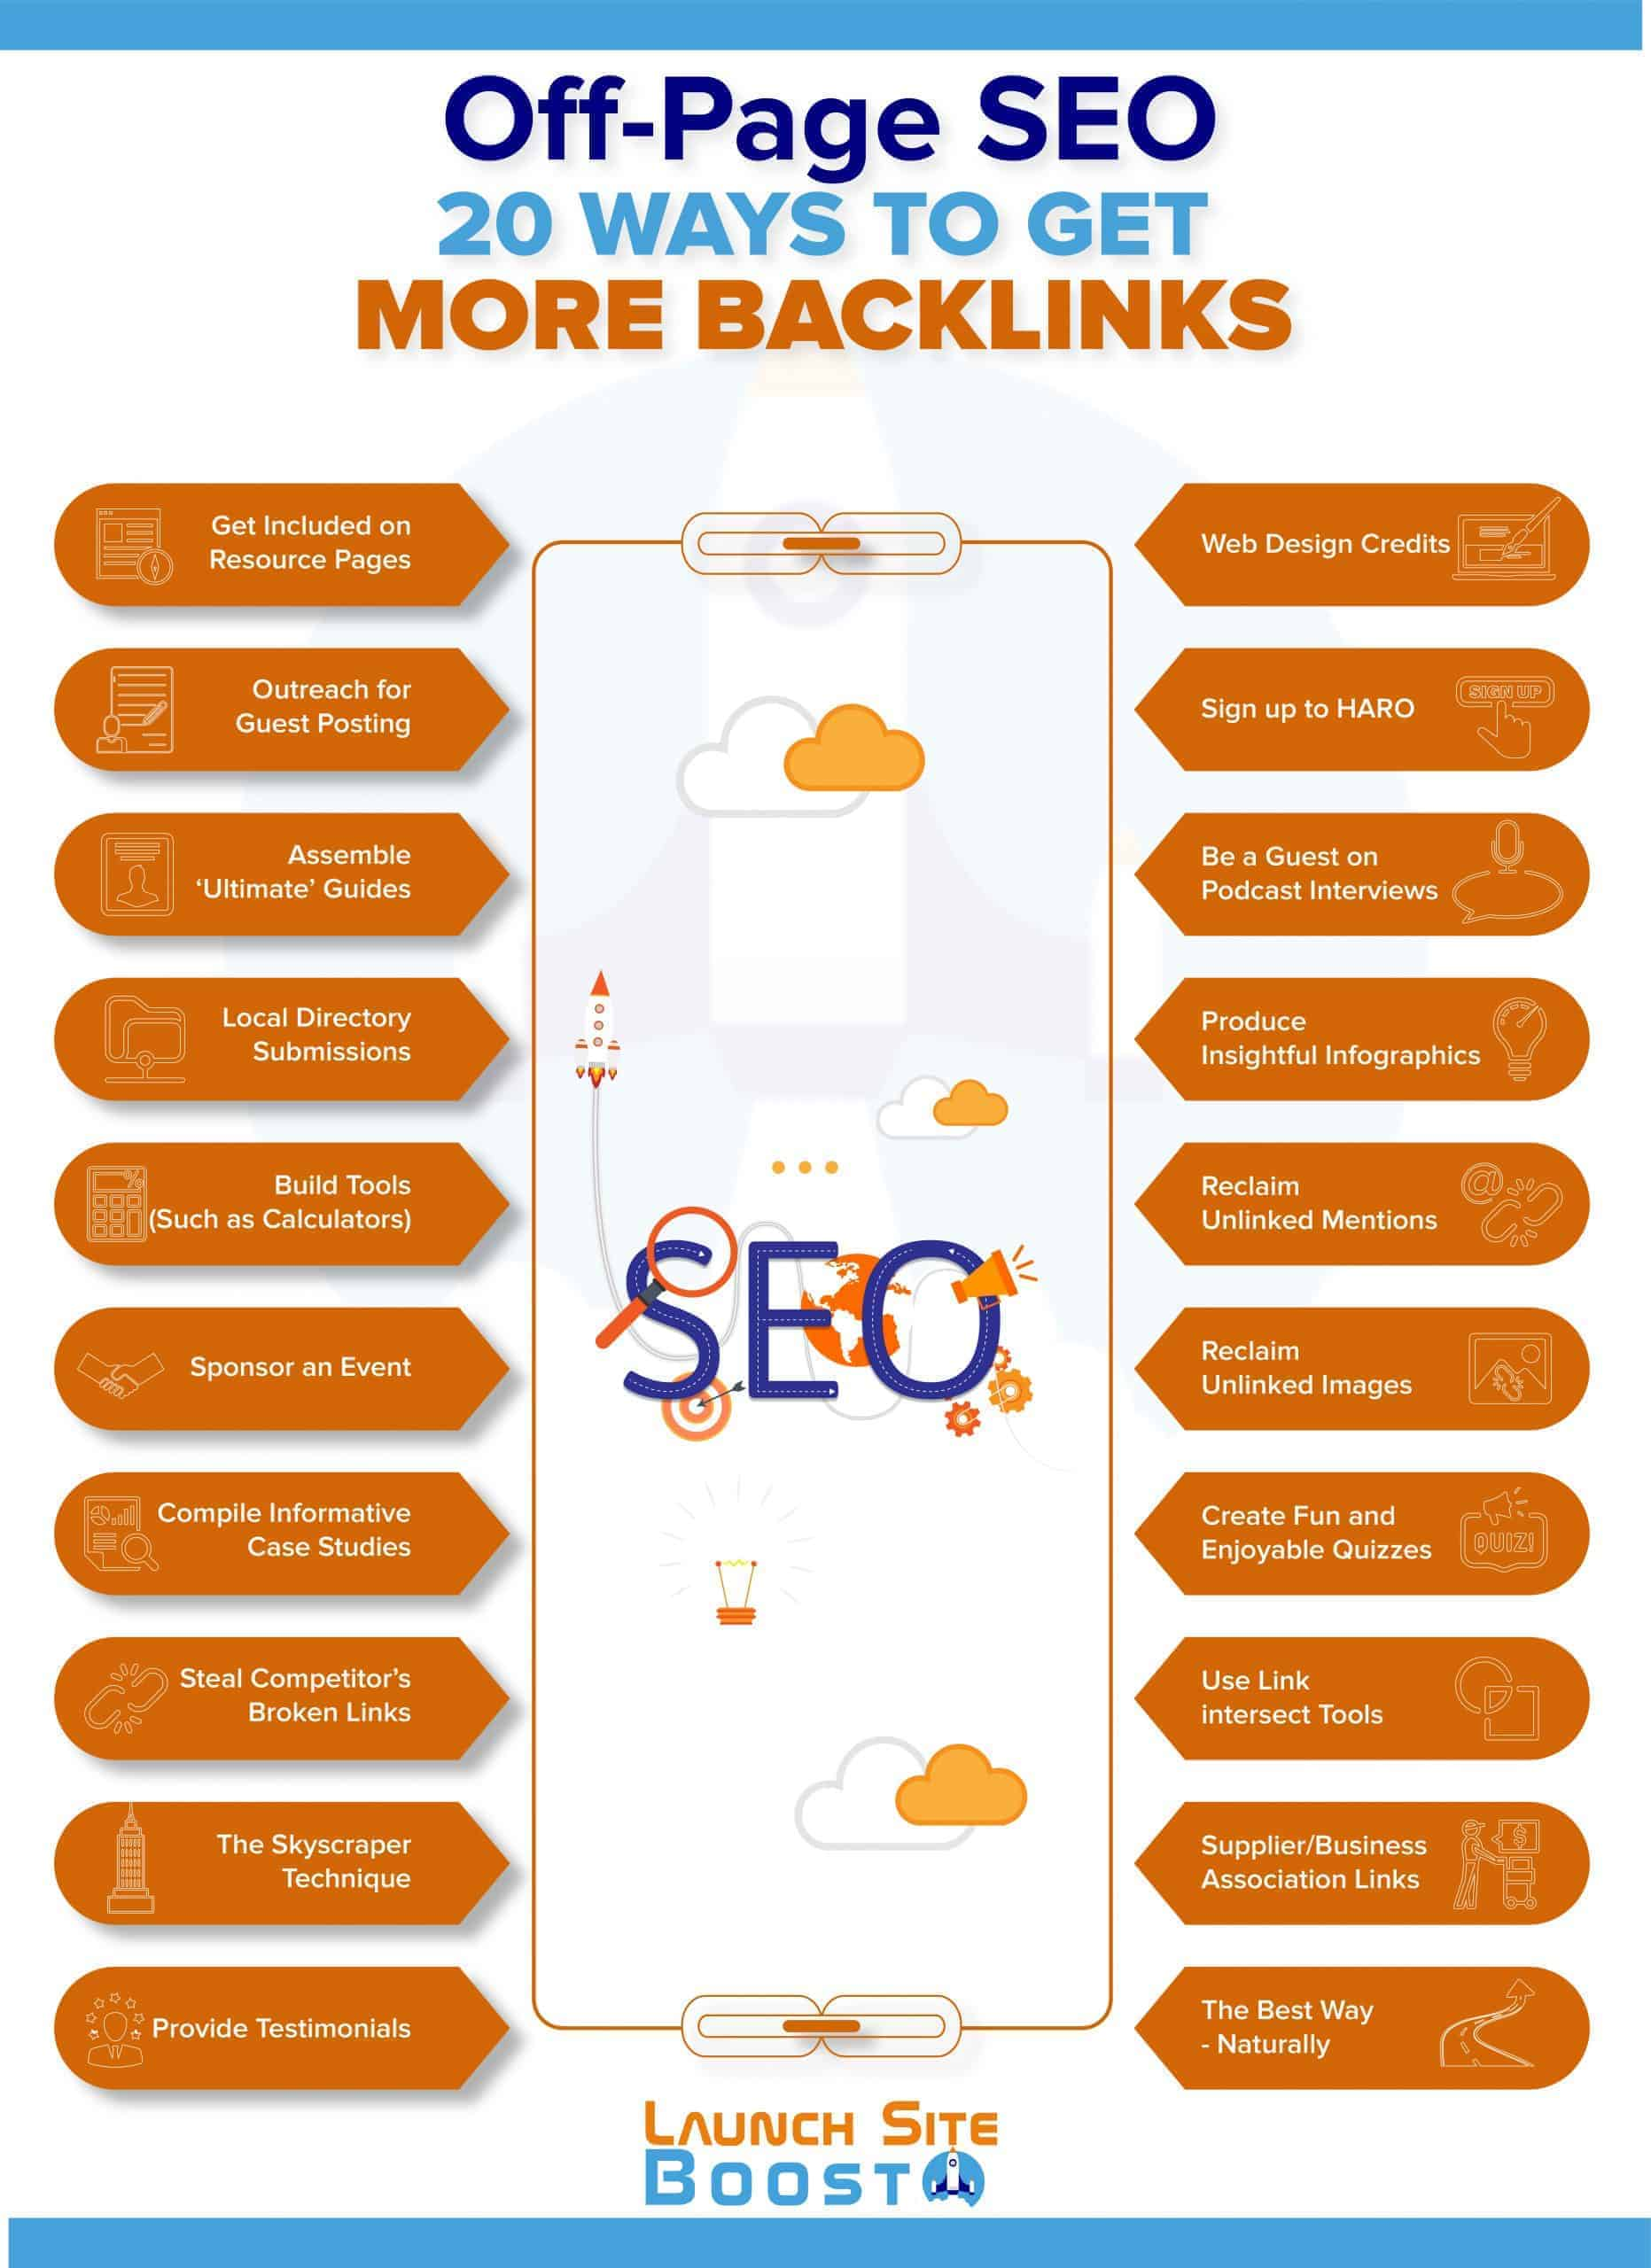 Build More Backlinks